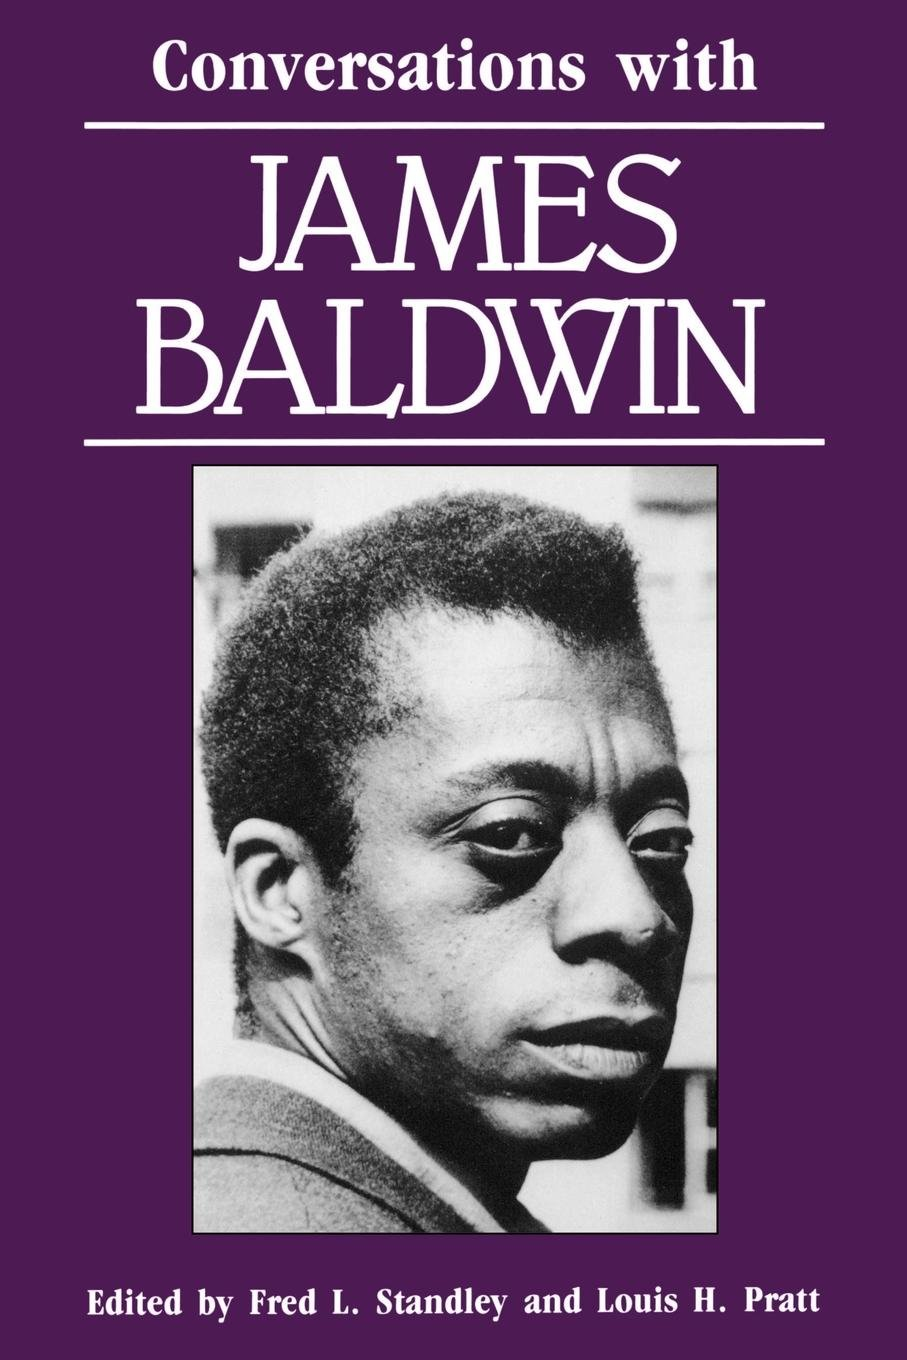 016 Essay Example 71a06nazfnl James Baldwin Collected Wondrous Essays Table Of Contents Ebook Google Books Full